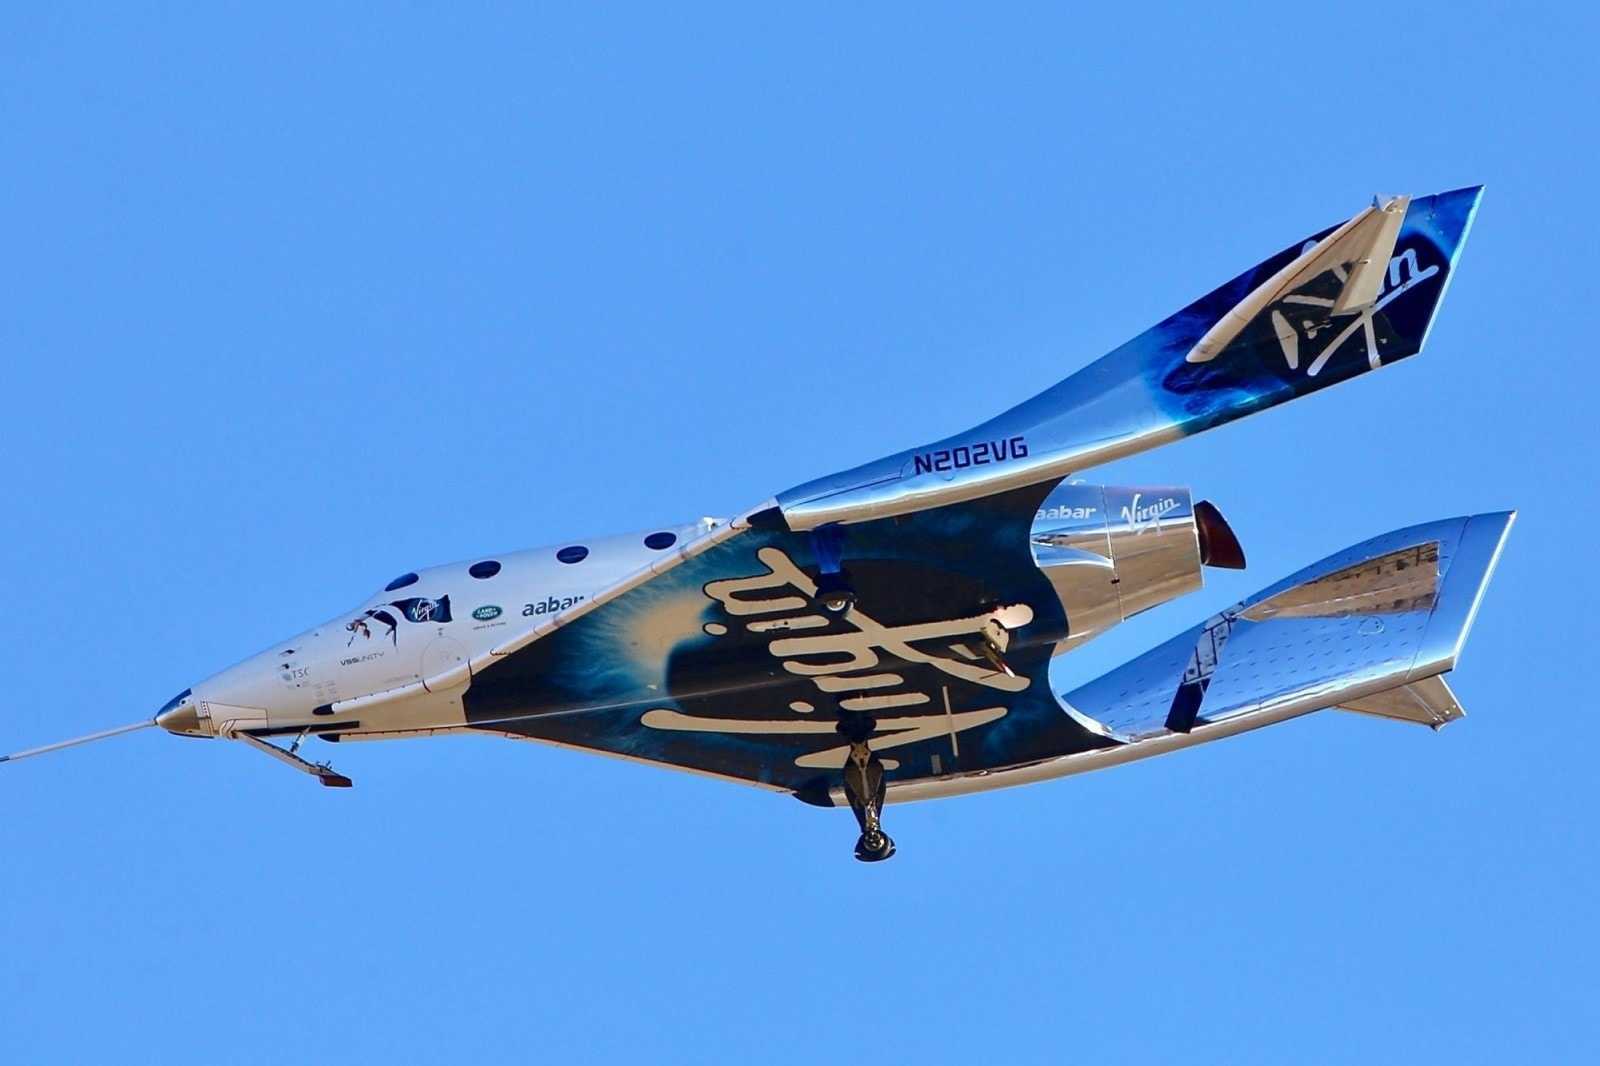 Virgin Galactic aircraft.